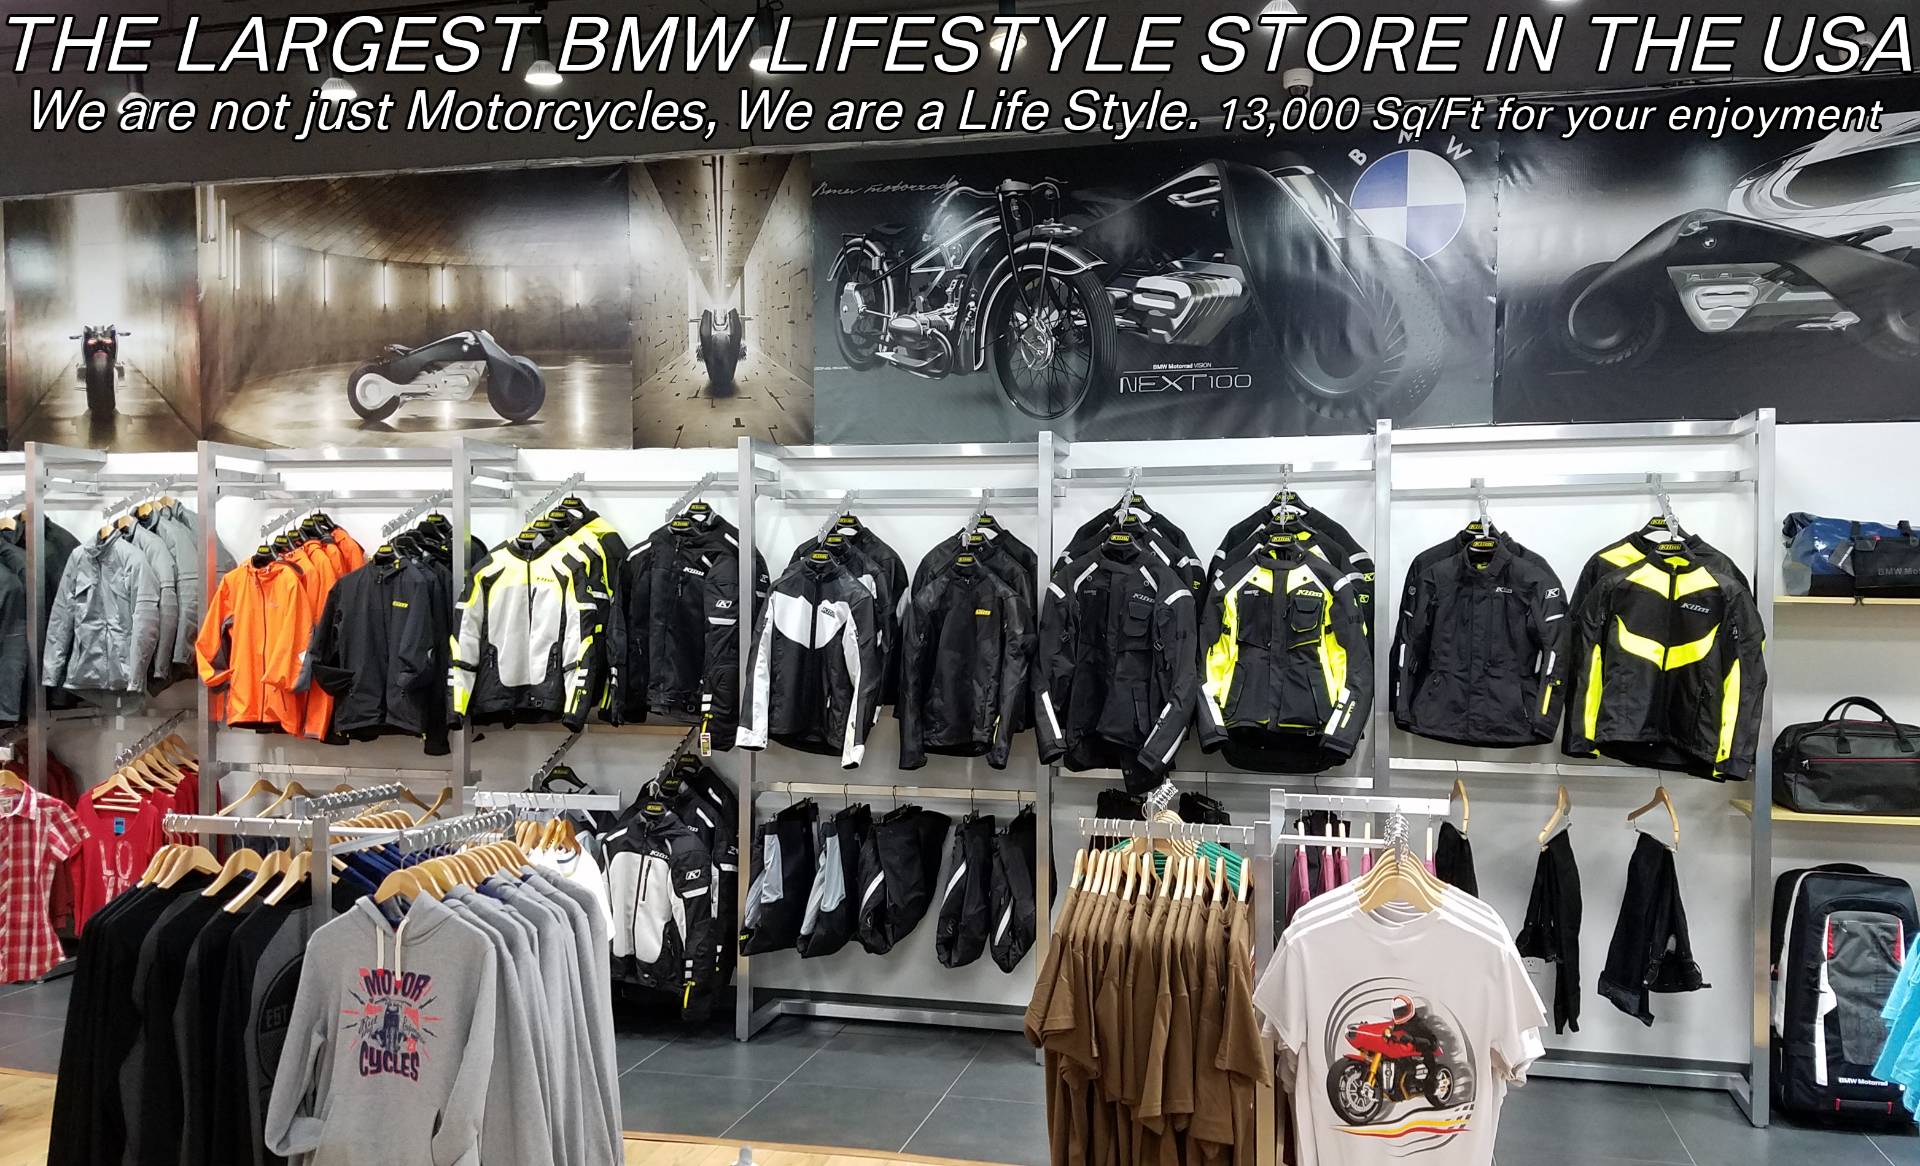 New 2019 BMW R 1250 GS for sale, New BMW R 1250GS, BMW R1250GS for sale, 1250GS, R1250GS, BMW Motorcycles of Miami, Motorcycles of Miami. Motorcycles Miami - Photo 55